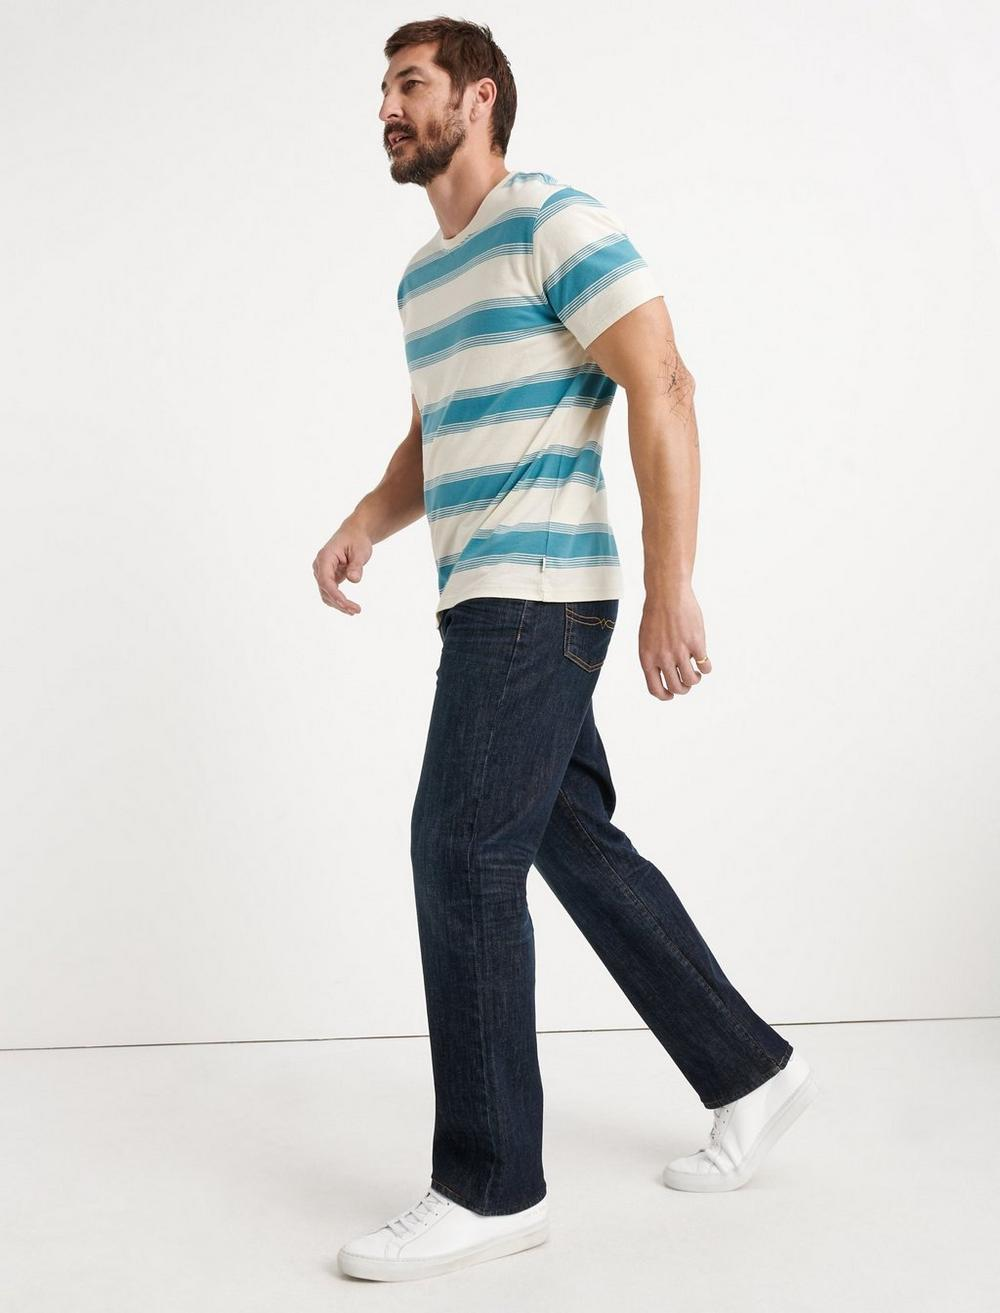 181 RELAXED STRAIGHT JEAN, image 2